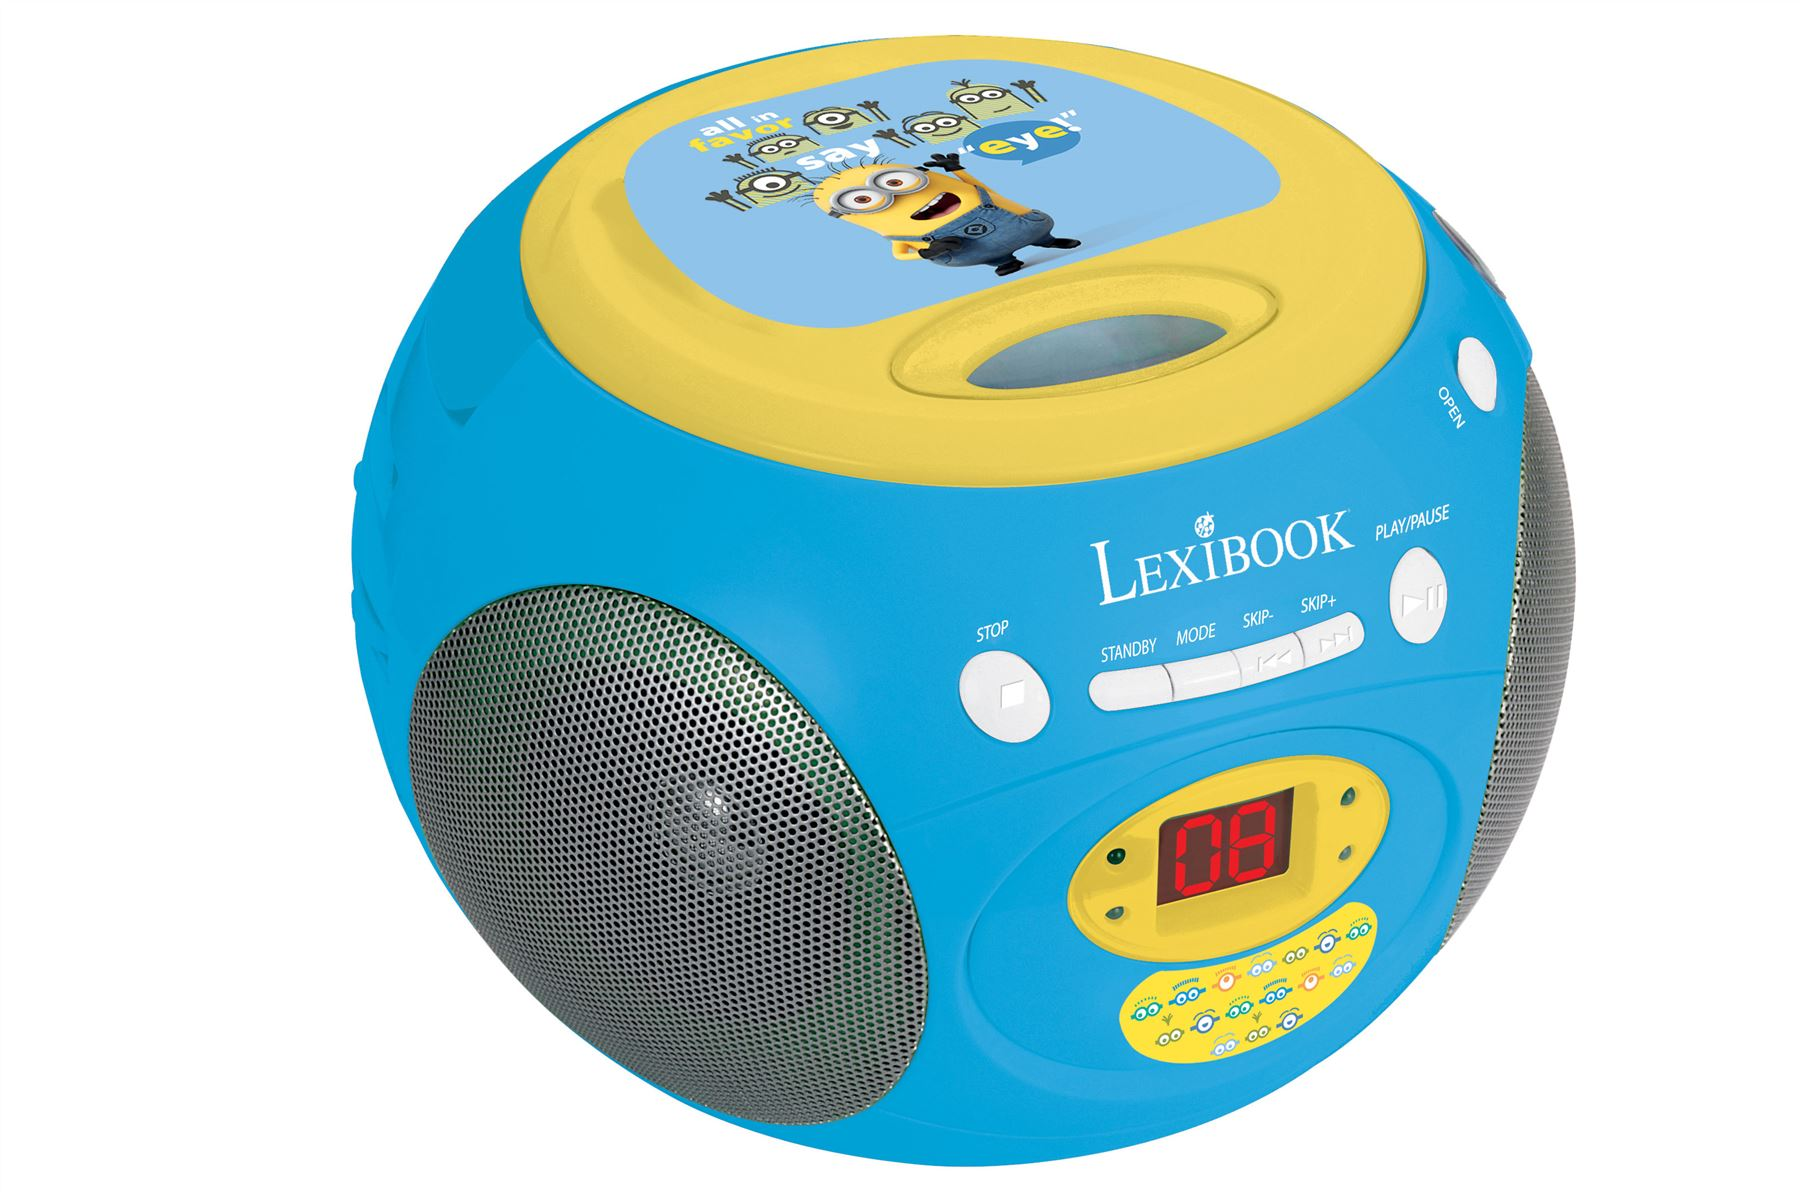 Solo Bluetooth Speaker With Fm Radio Mp3 Player likewise Wheelchair Chest Harness For Power together with 20 Non Candy Stocking Stuffers For Boys And Girls moreover Images besides Picture Vocabulary. on toddler radio player